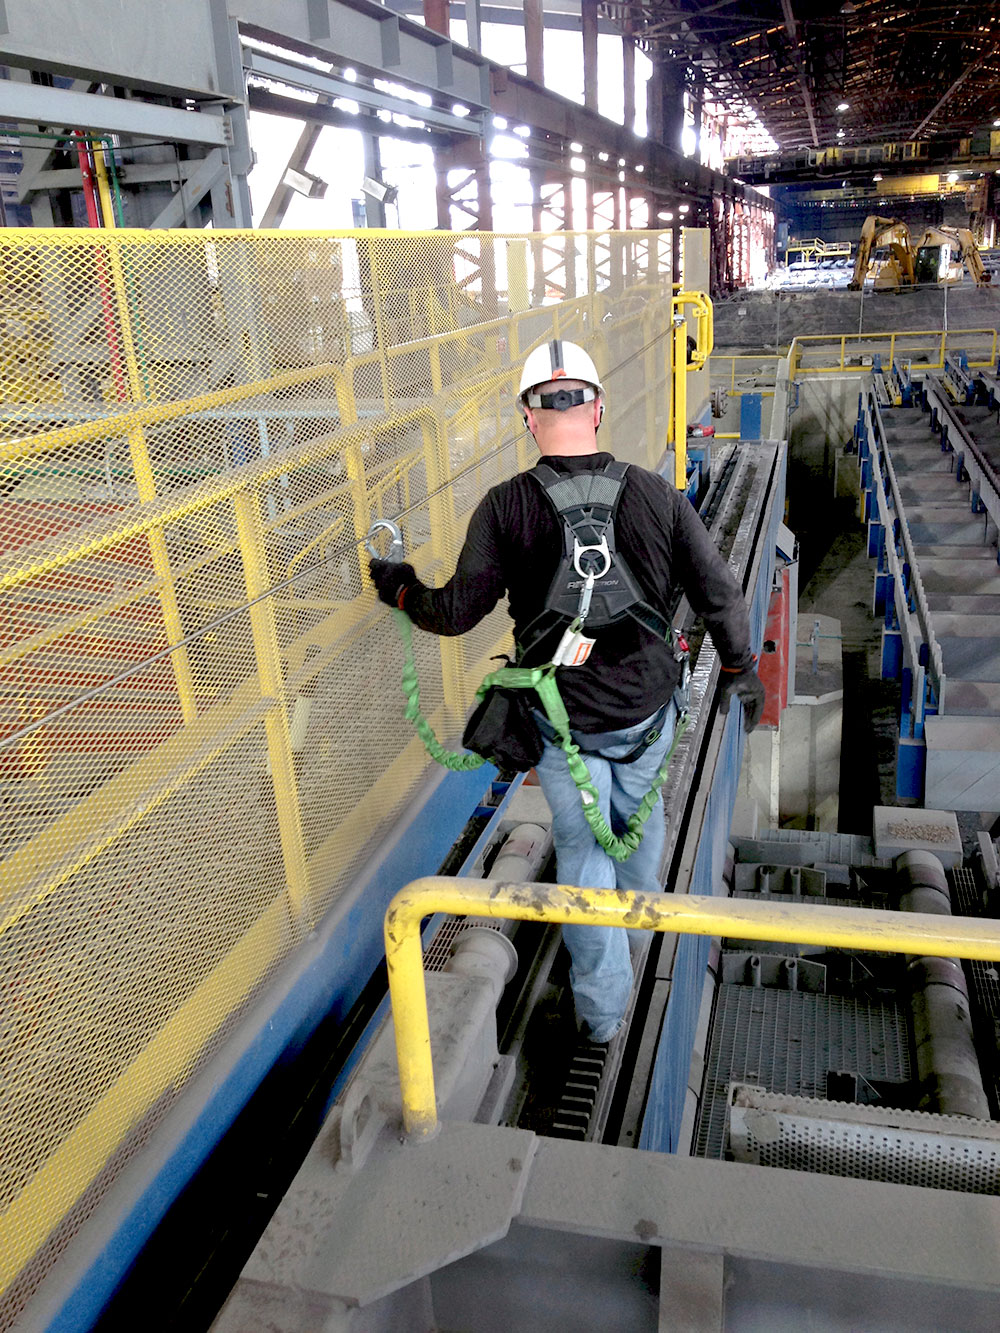 A Skyline fall protection inspection taking place as a technician walks a lifeline in a steel mill.